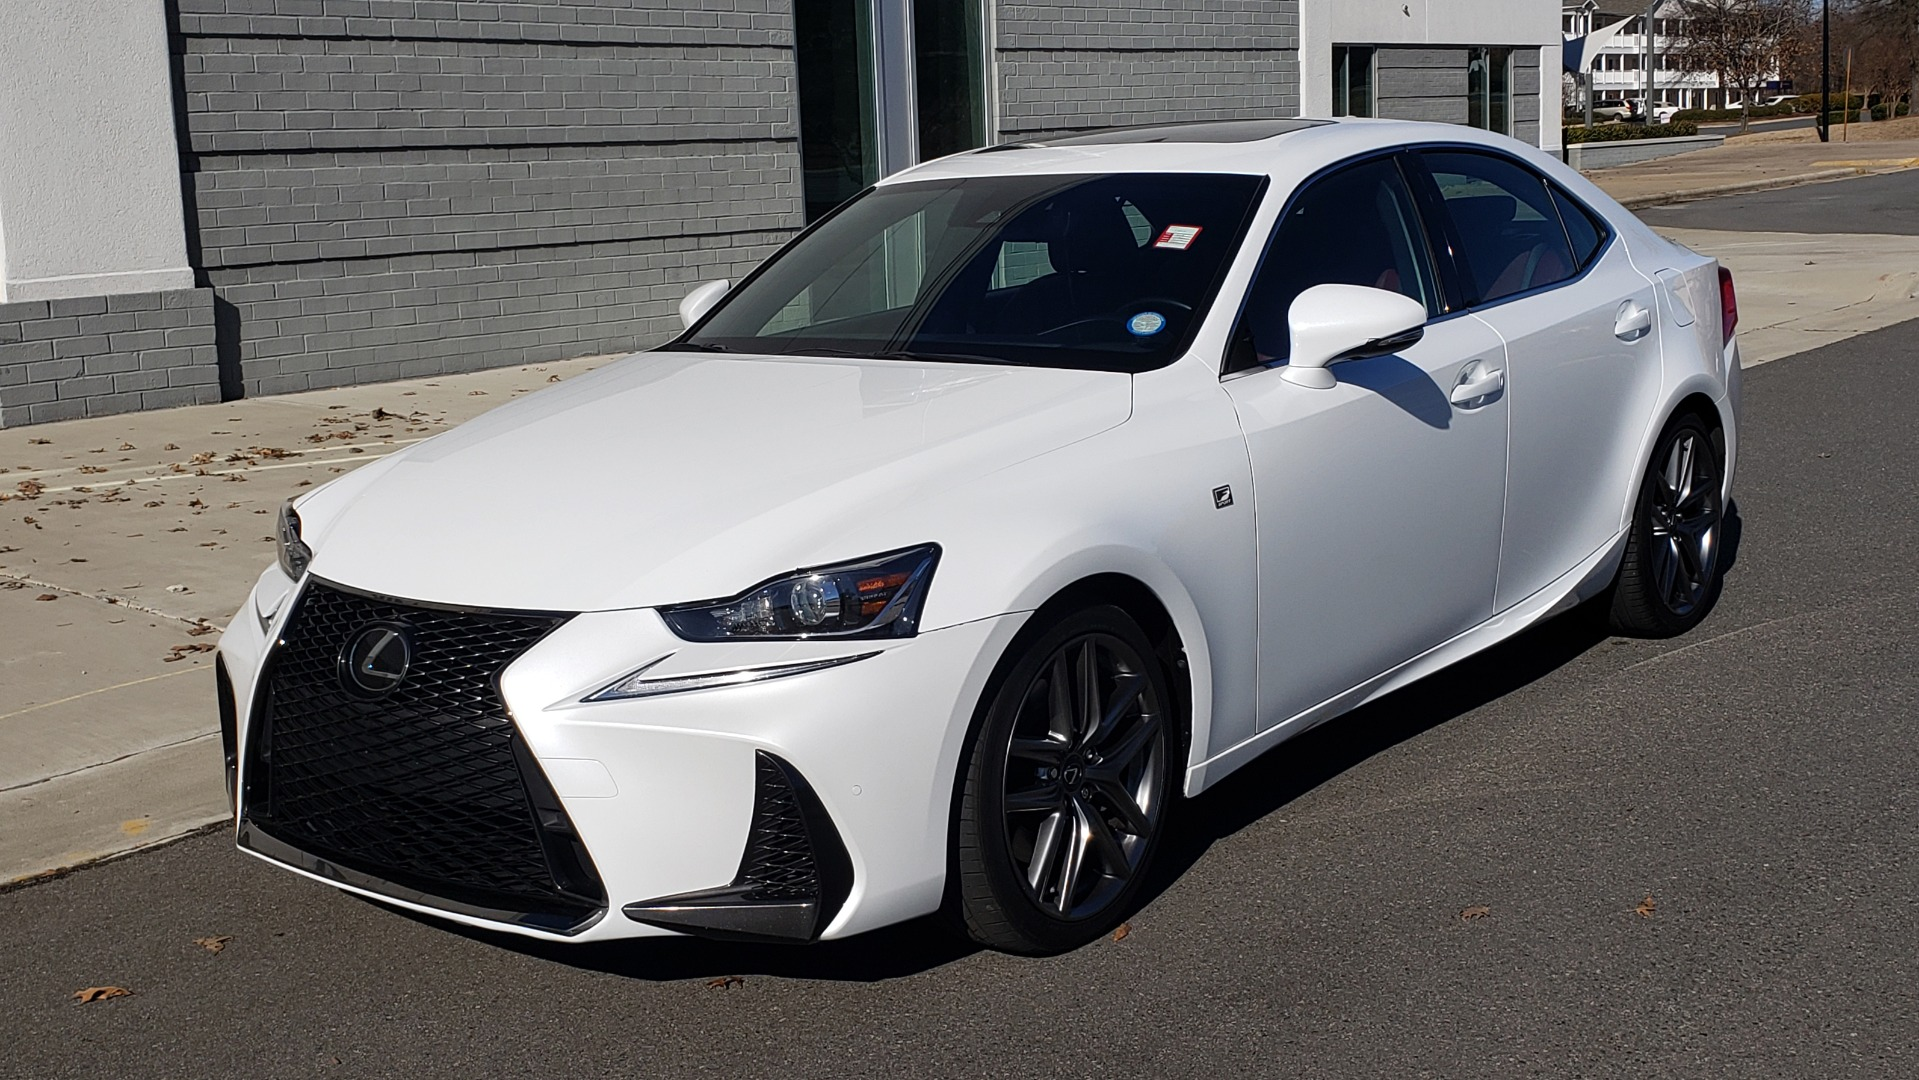 Used 2018 Lexus IS 300 F-SPORT / BSM / SUNROOF / REARVIEW / 18IN WHEELS for sale Sold at Formula Imports in Charlotte NC 28227 7